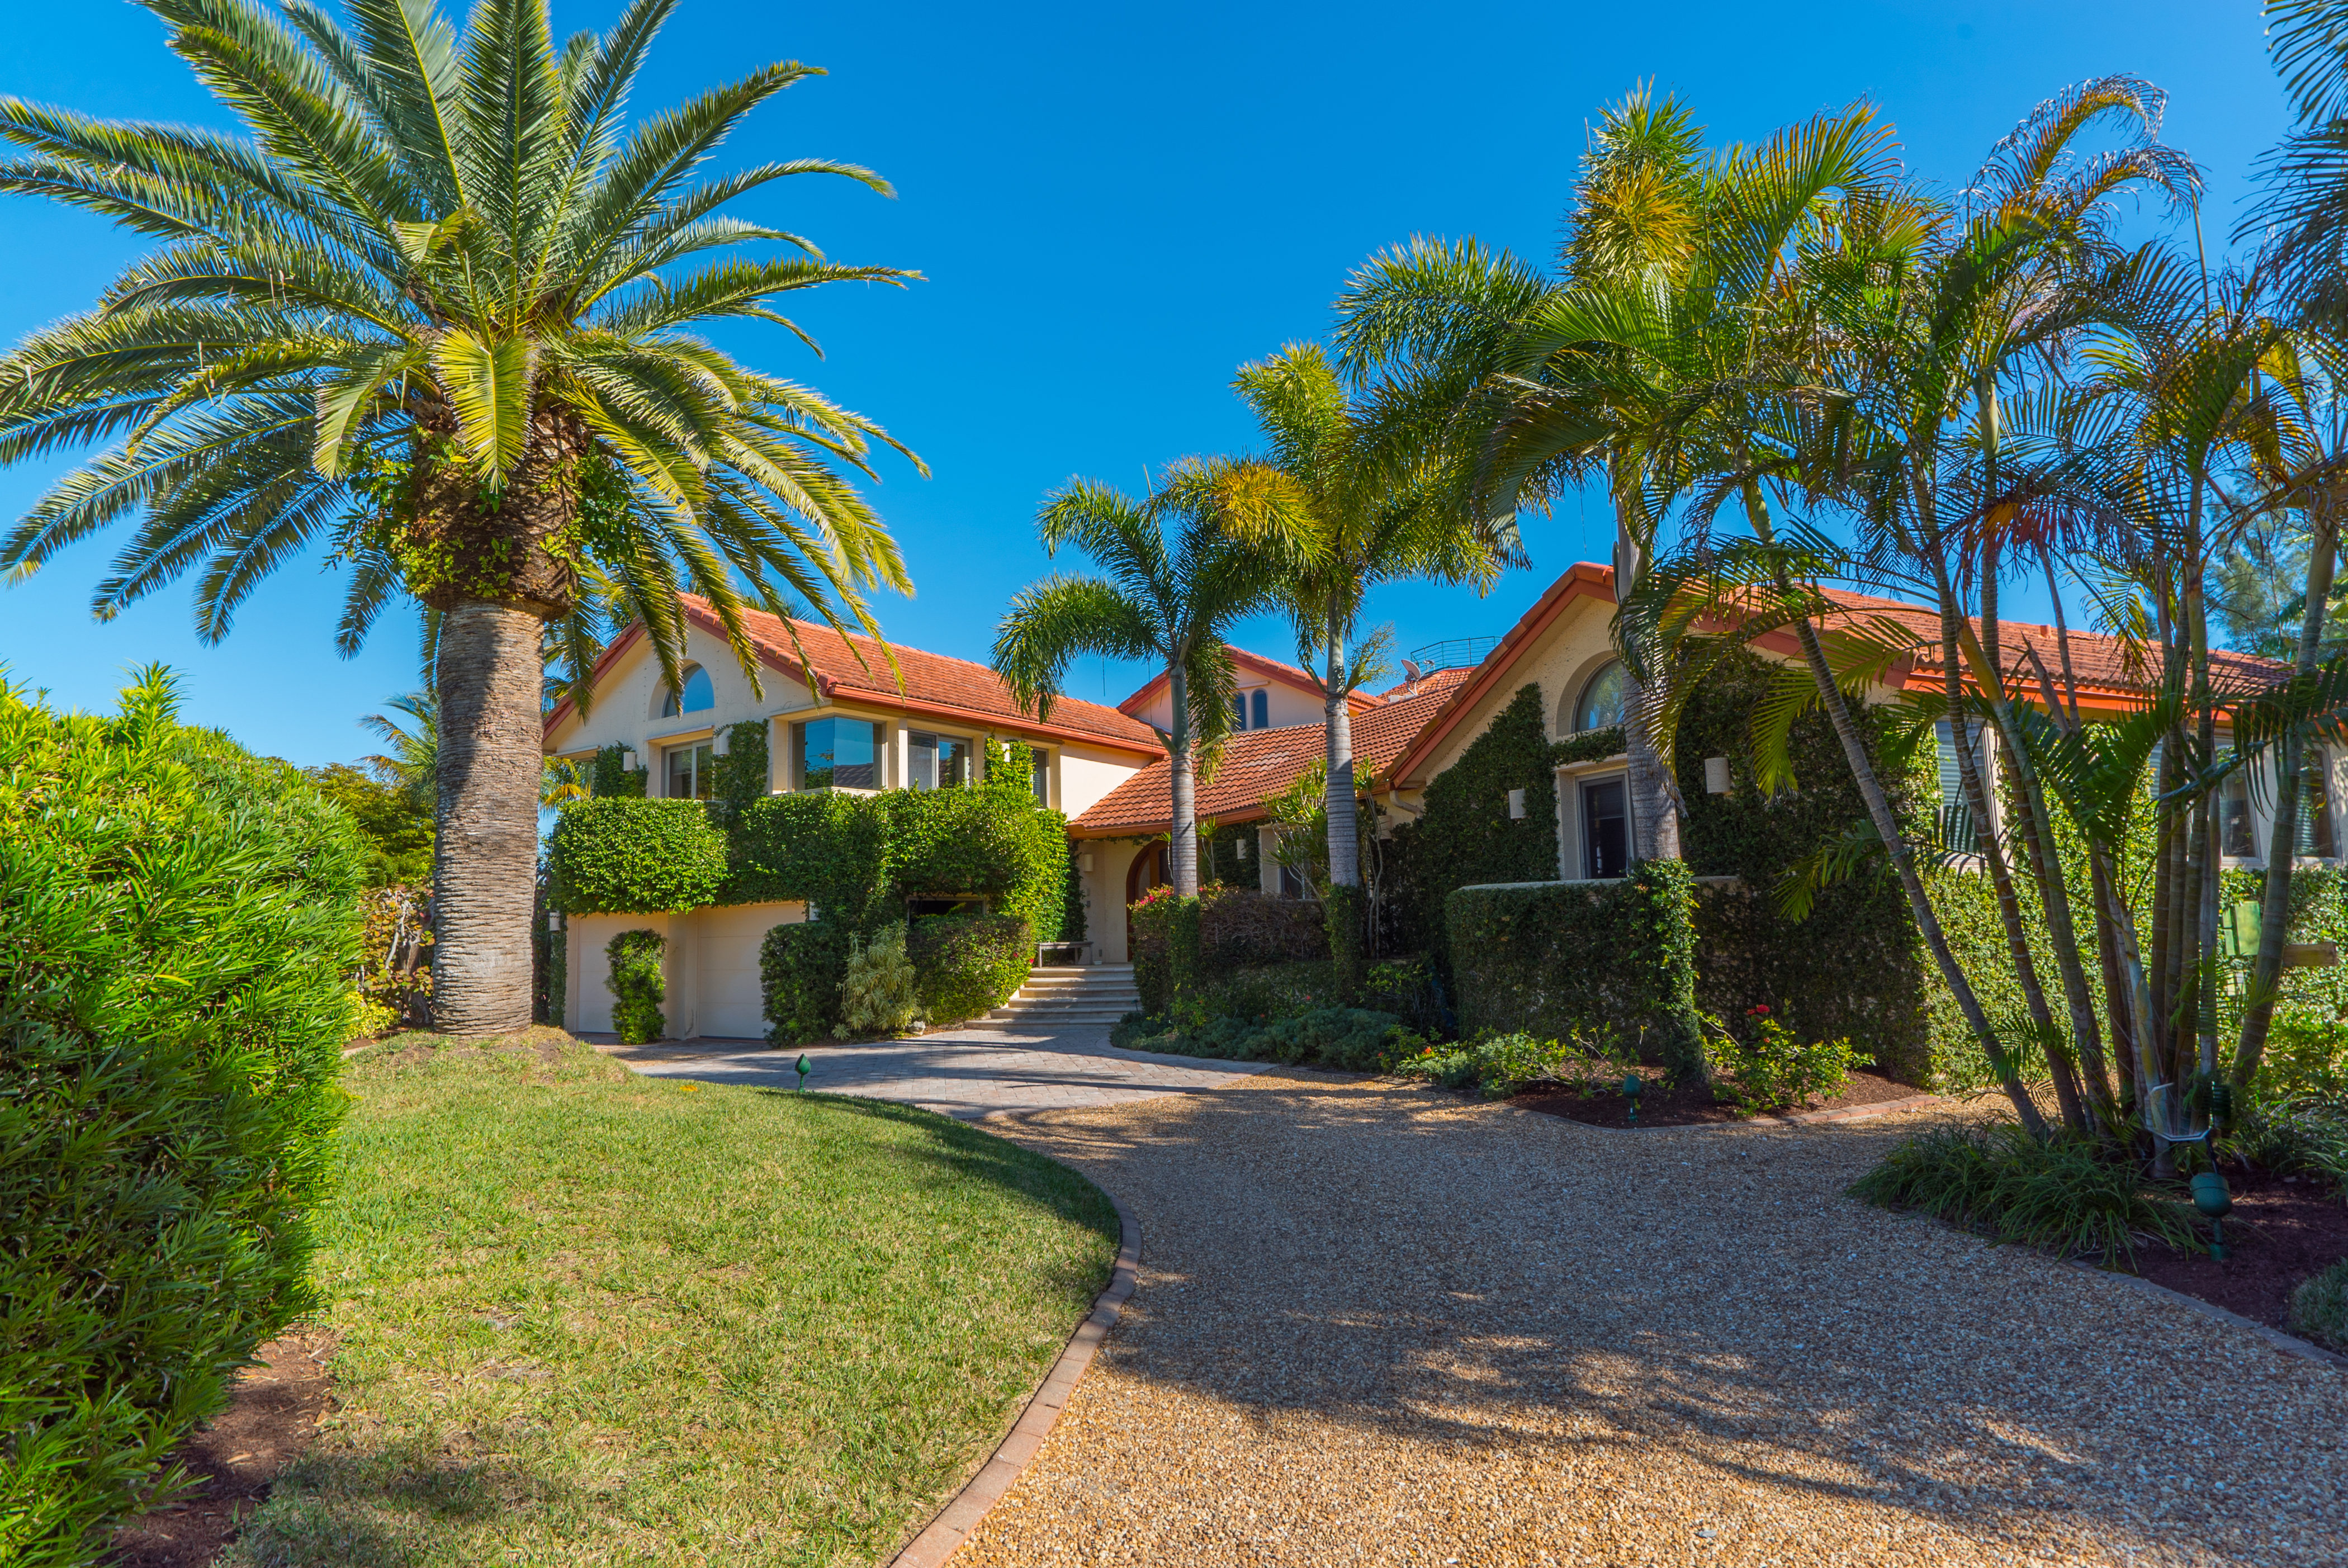 Single Family Home for Sale at 1780 Jose Garpar Drive 1780 Jose Gaspar Drive Boca Grande, Florida 33921 United States